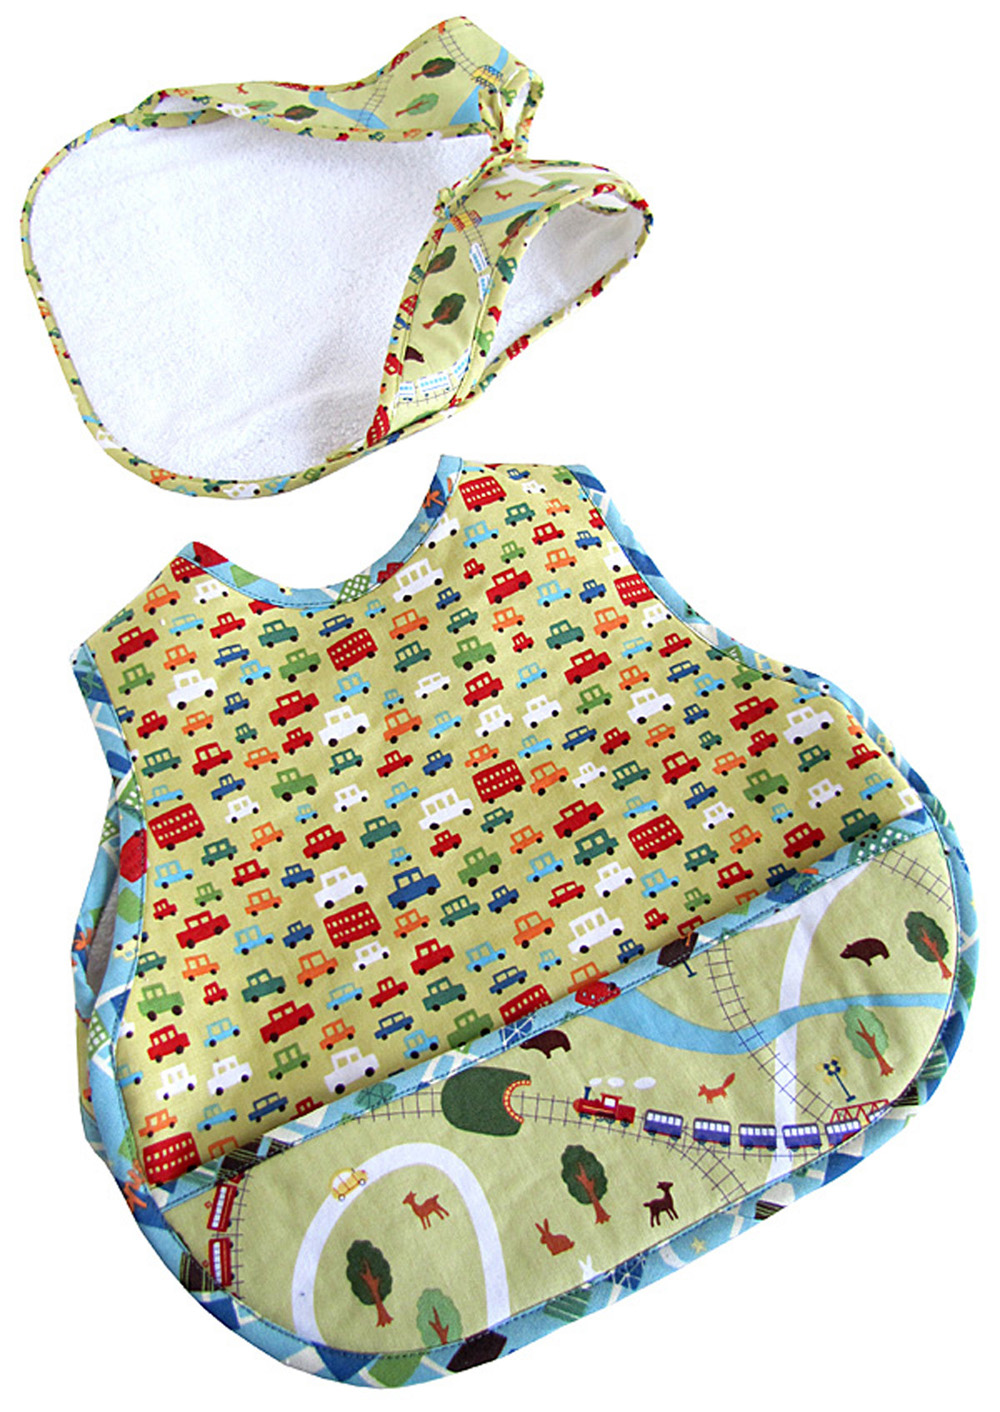 You Sew Girl Fabulous Fifties Bib Downloadable Pattern Fabulous Fifties Bib